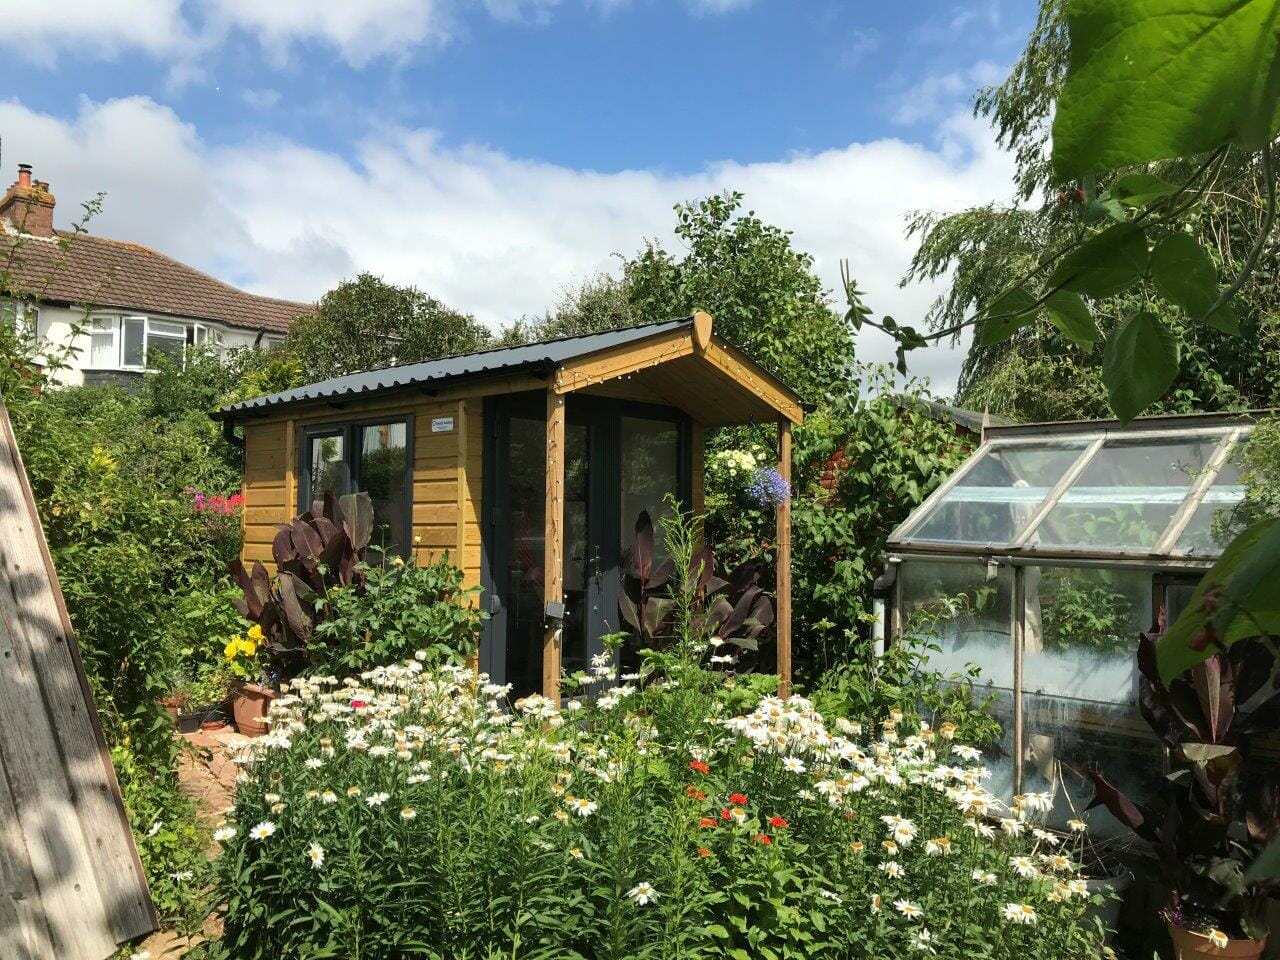 Artist studio with canopy in garden setting